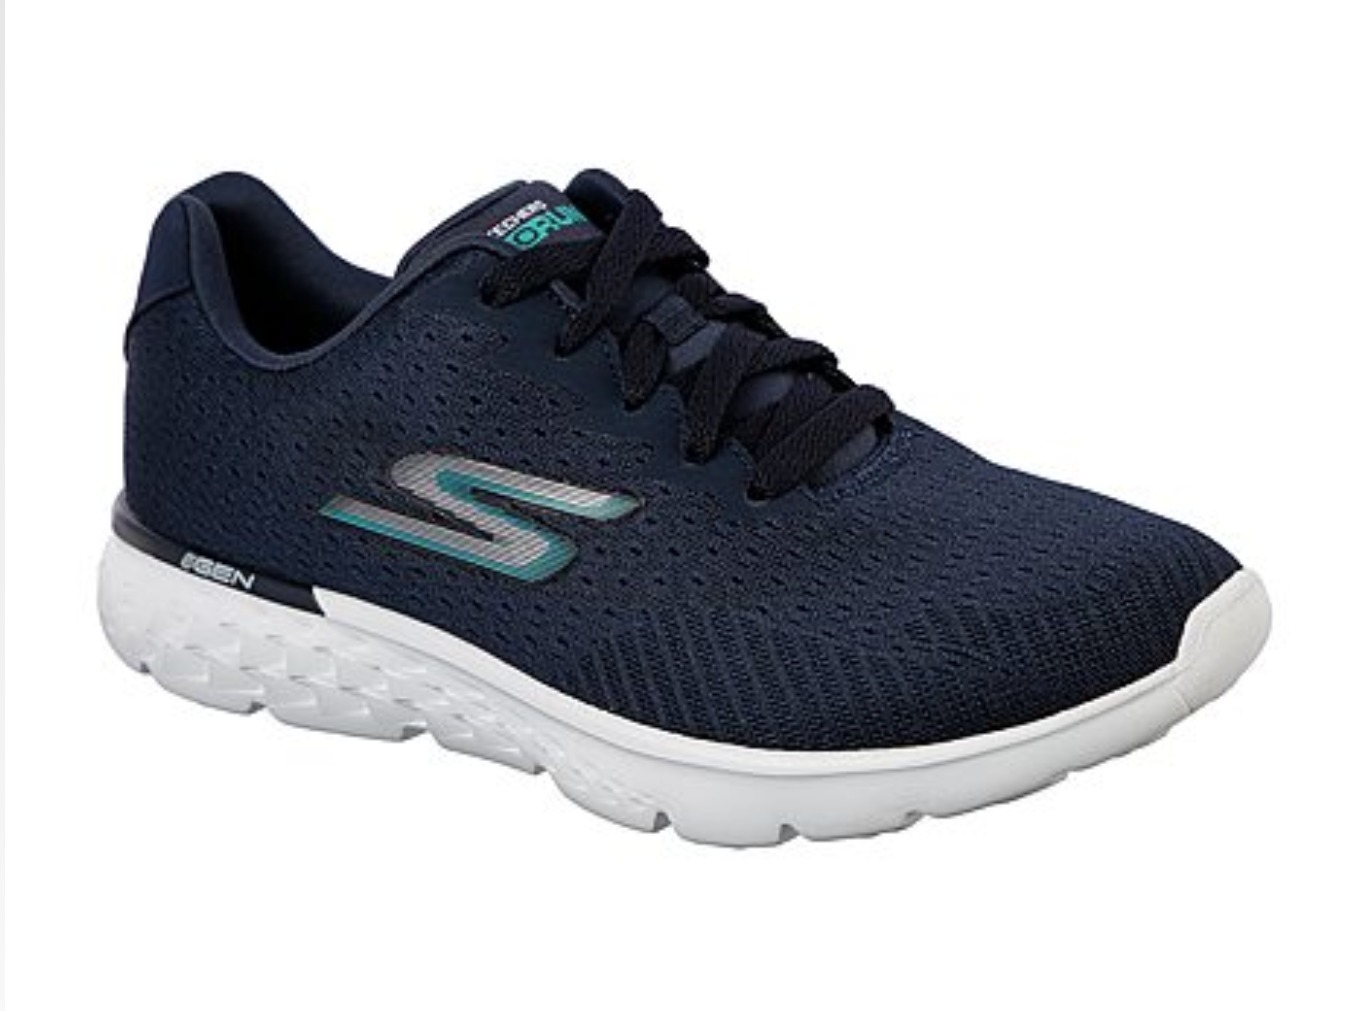 Skechers GOrun 400 - Sole NavyWhite Women's スケッチャーズ